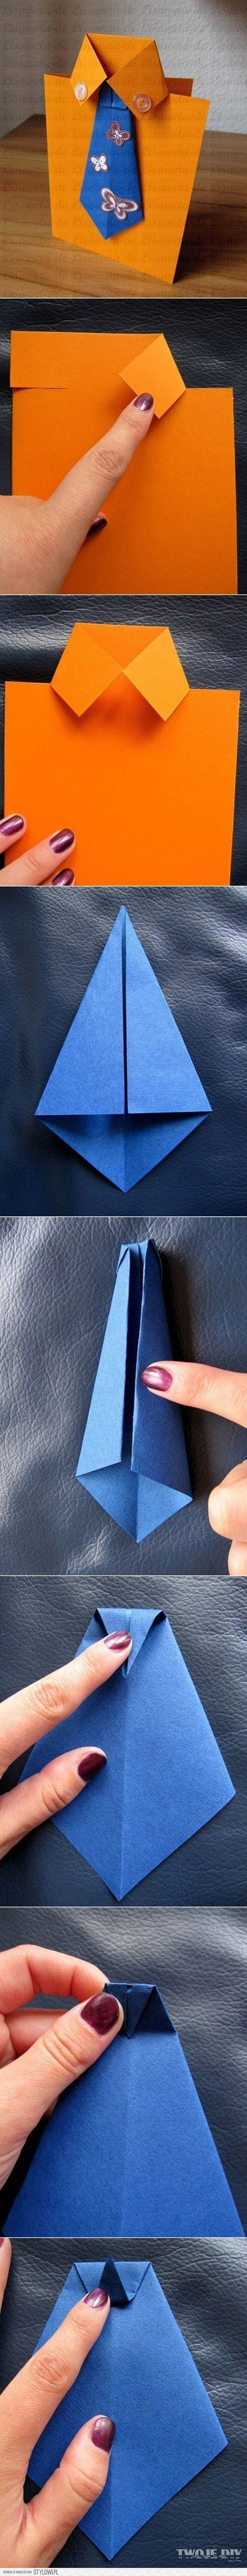 Cute DIY Father's Day Card Ideas | Necktie Card by DIY Ready at http://diyready.com/21-diy-fathers-day-cards/: